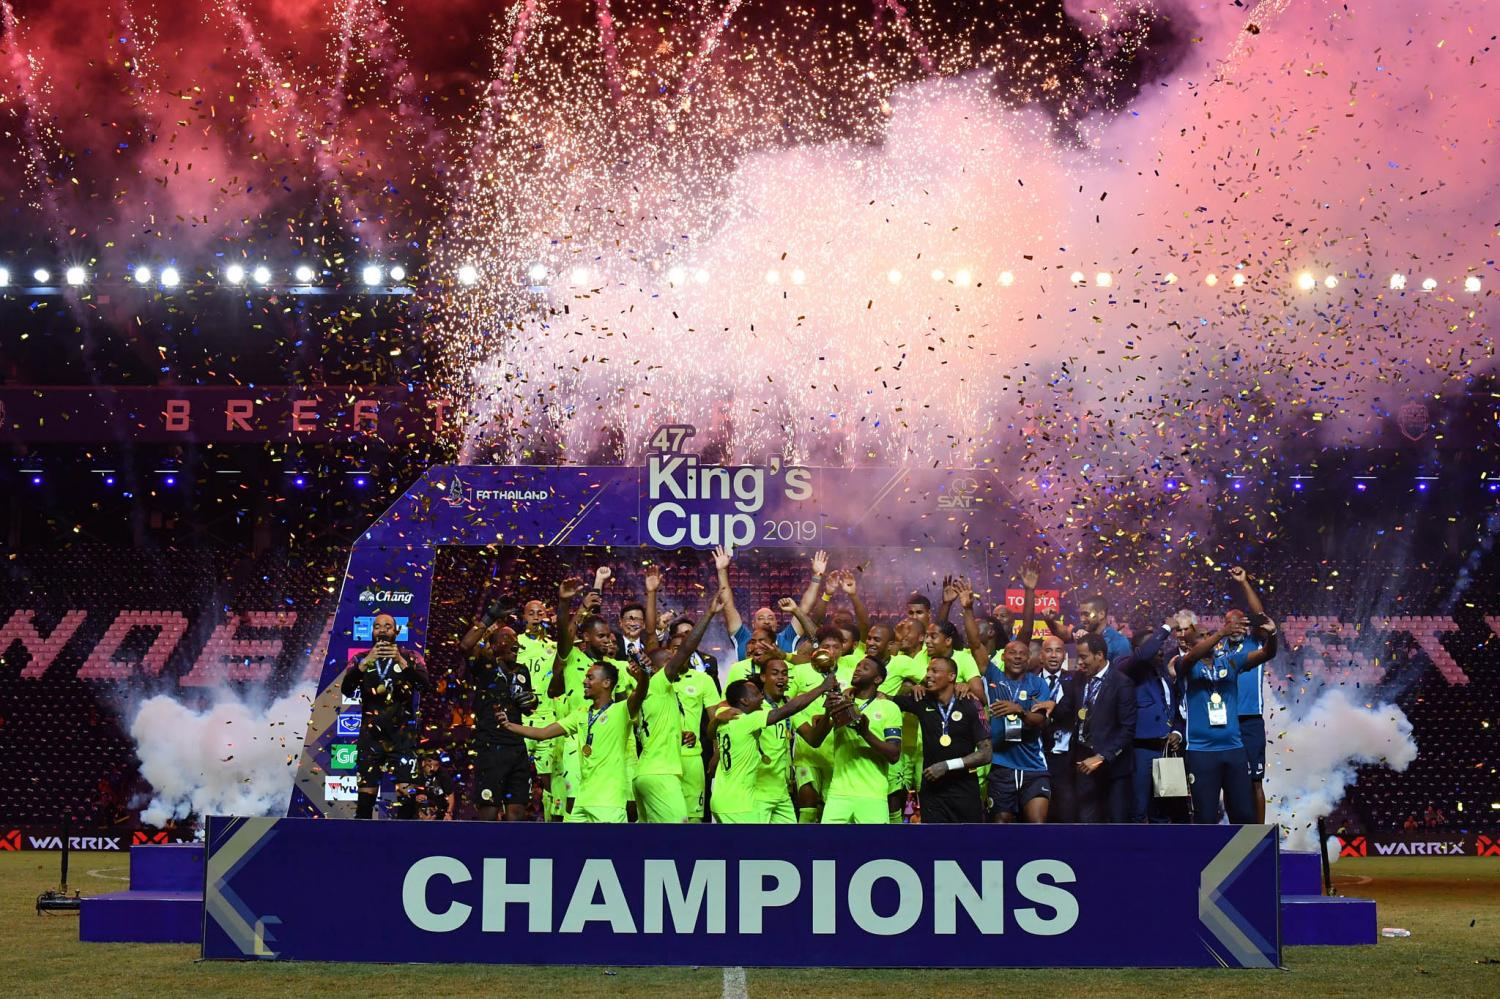 Curacao celebrate winning the King's Cup last year at Chang Arena in Buri Ram.